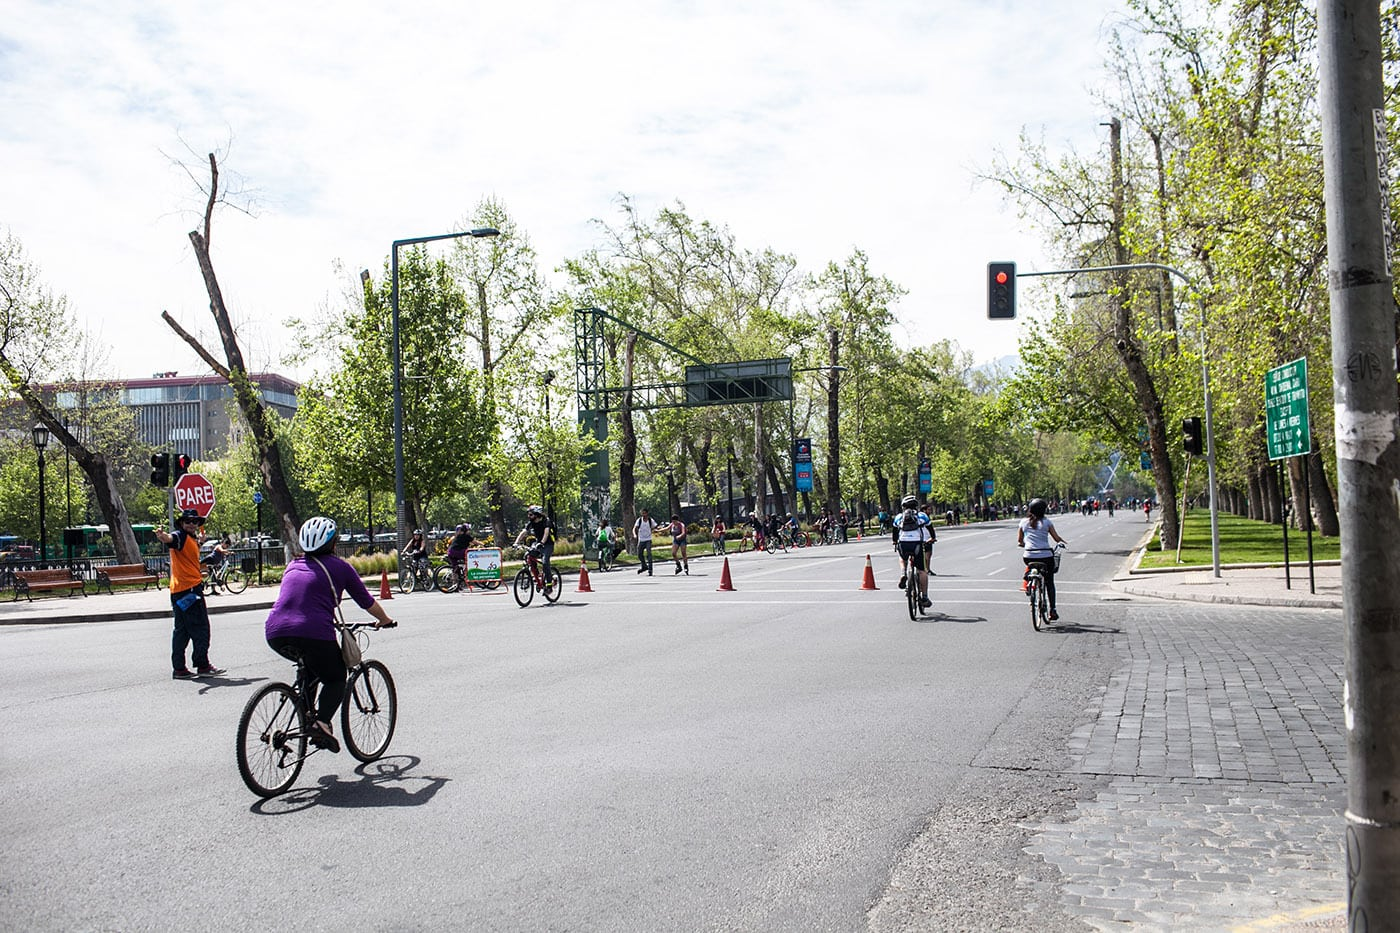 Blocked off streets for cyclists in Santiago, Chile